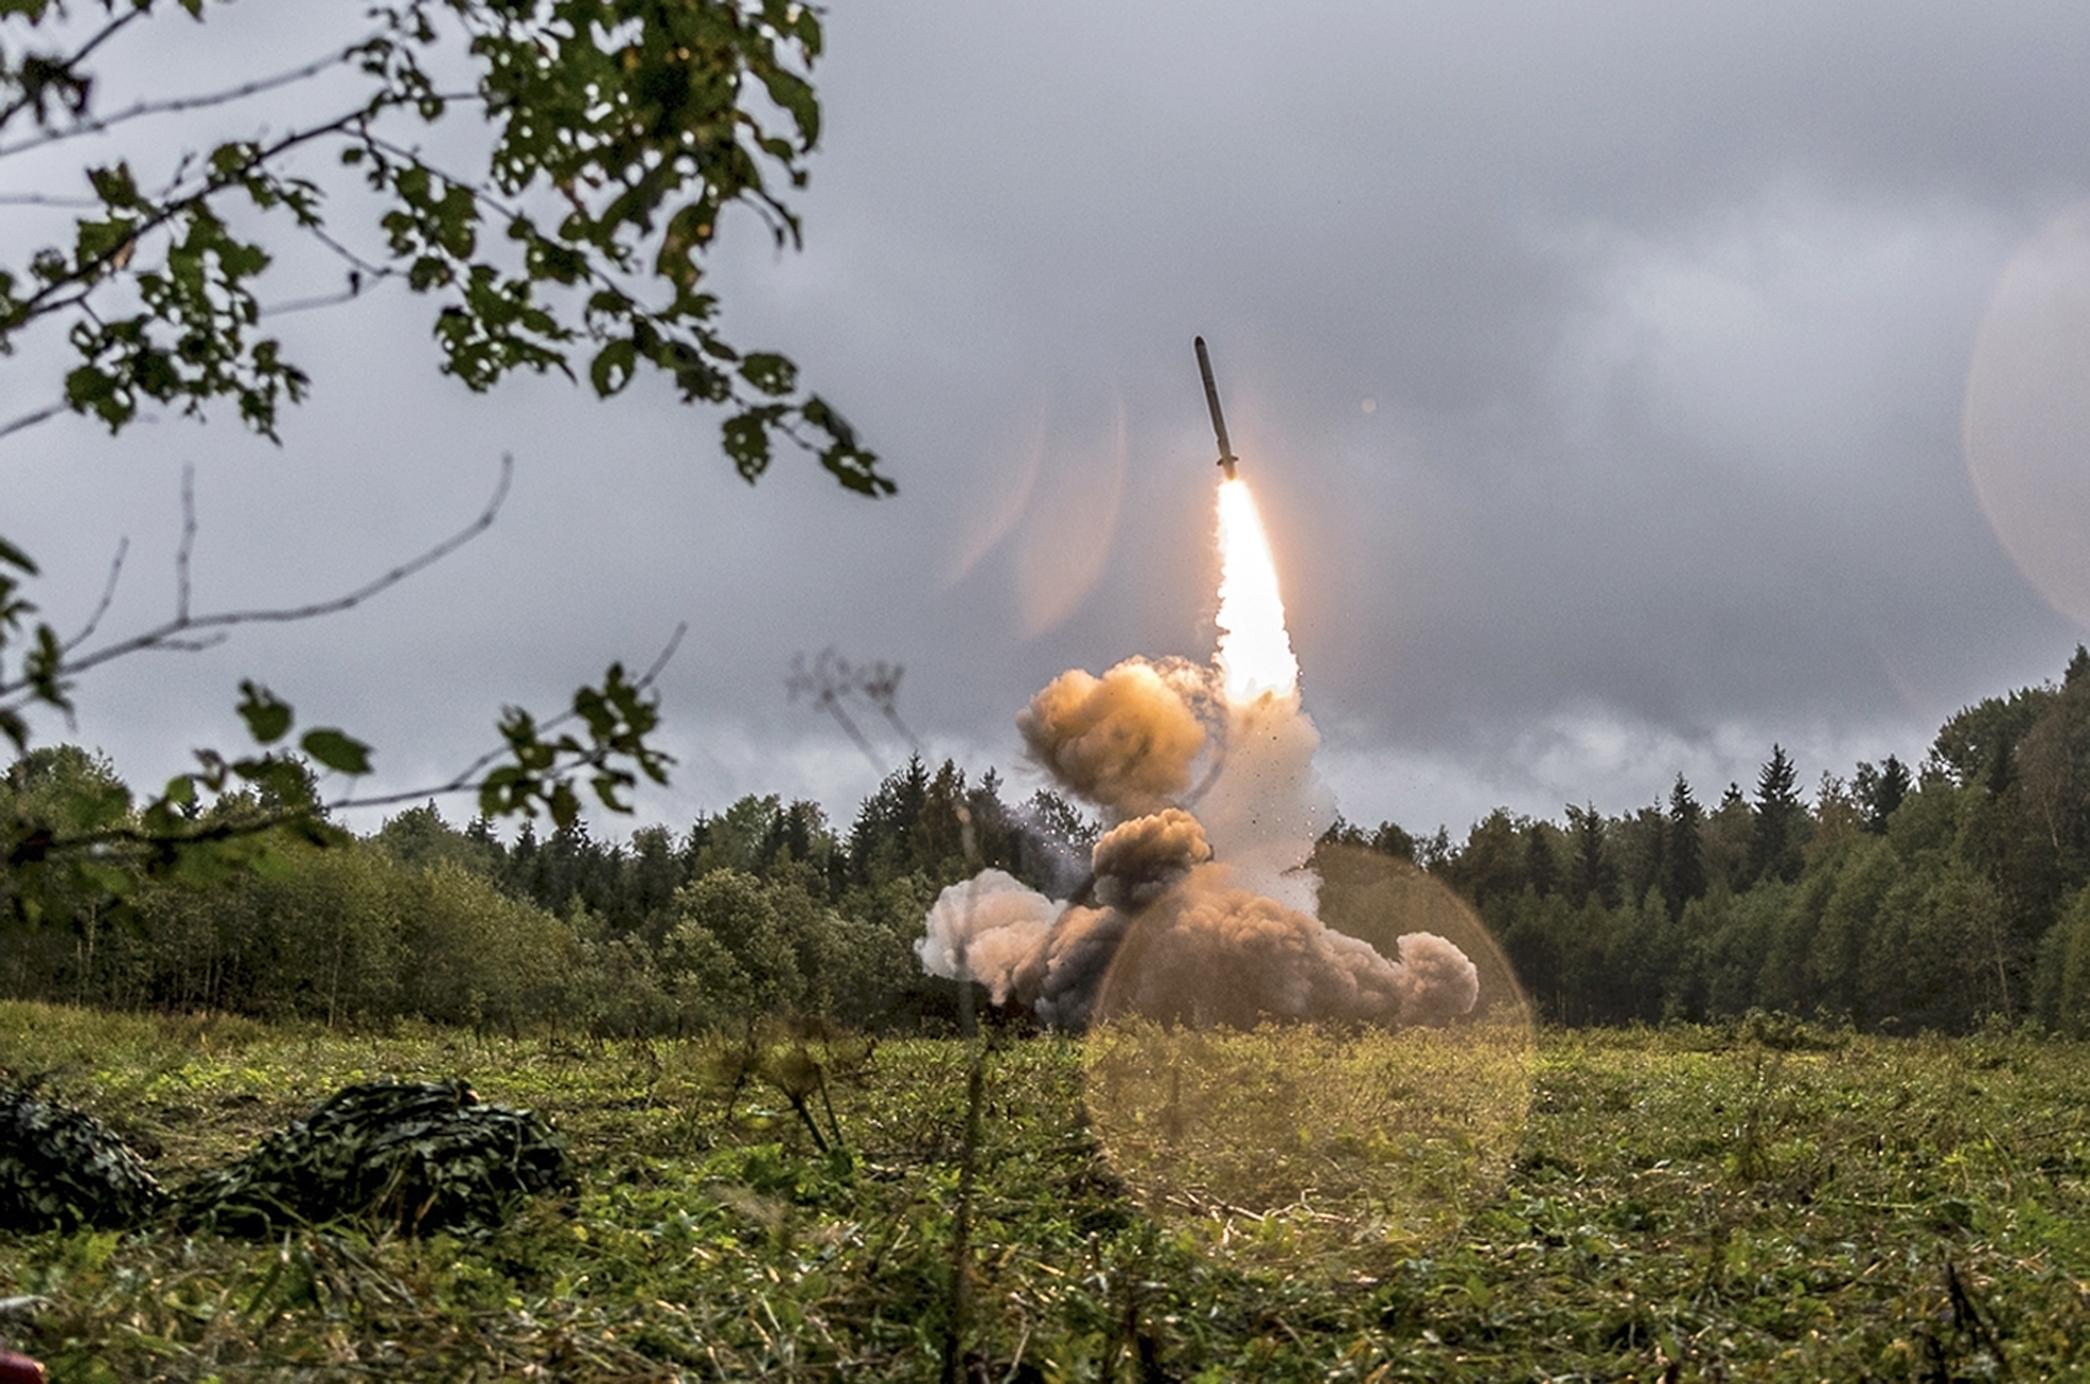 Russia says 'no plans' to resume INF Treaty talks with U.S. amid collapse of weapons pact